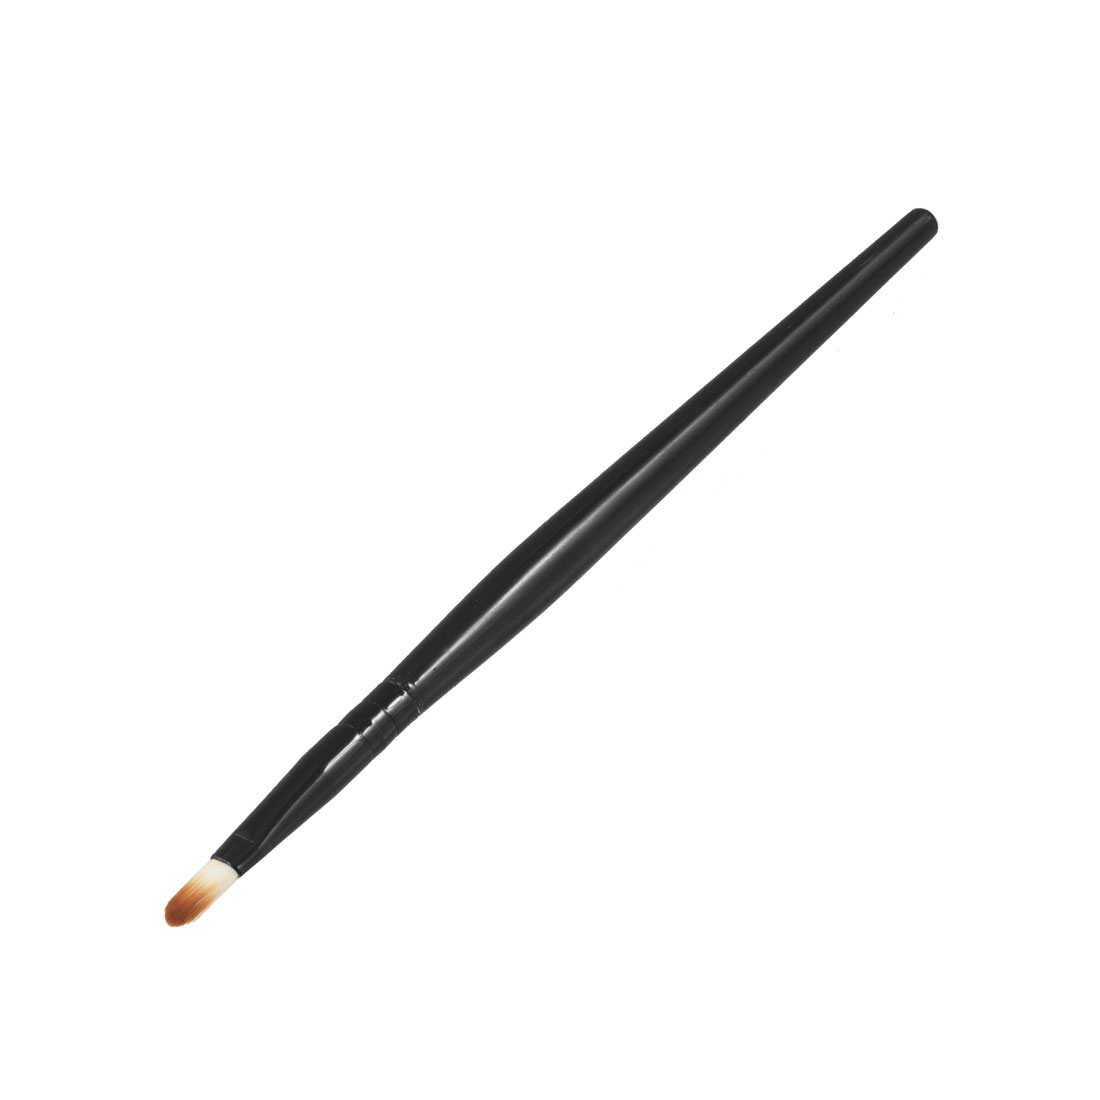 Makeup Cosmetic Tool Black Round Handle Lip Brush for Ladies